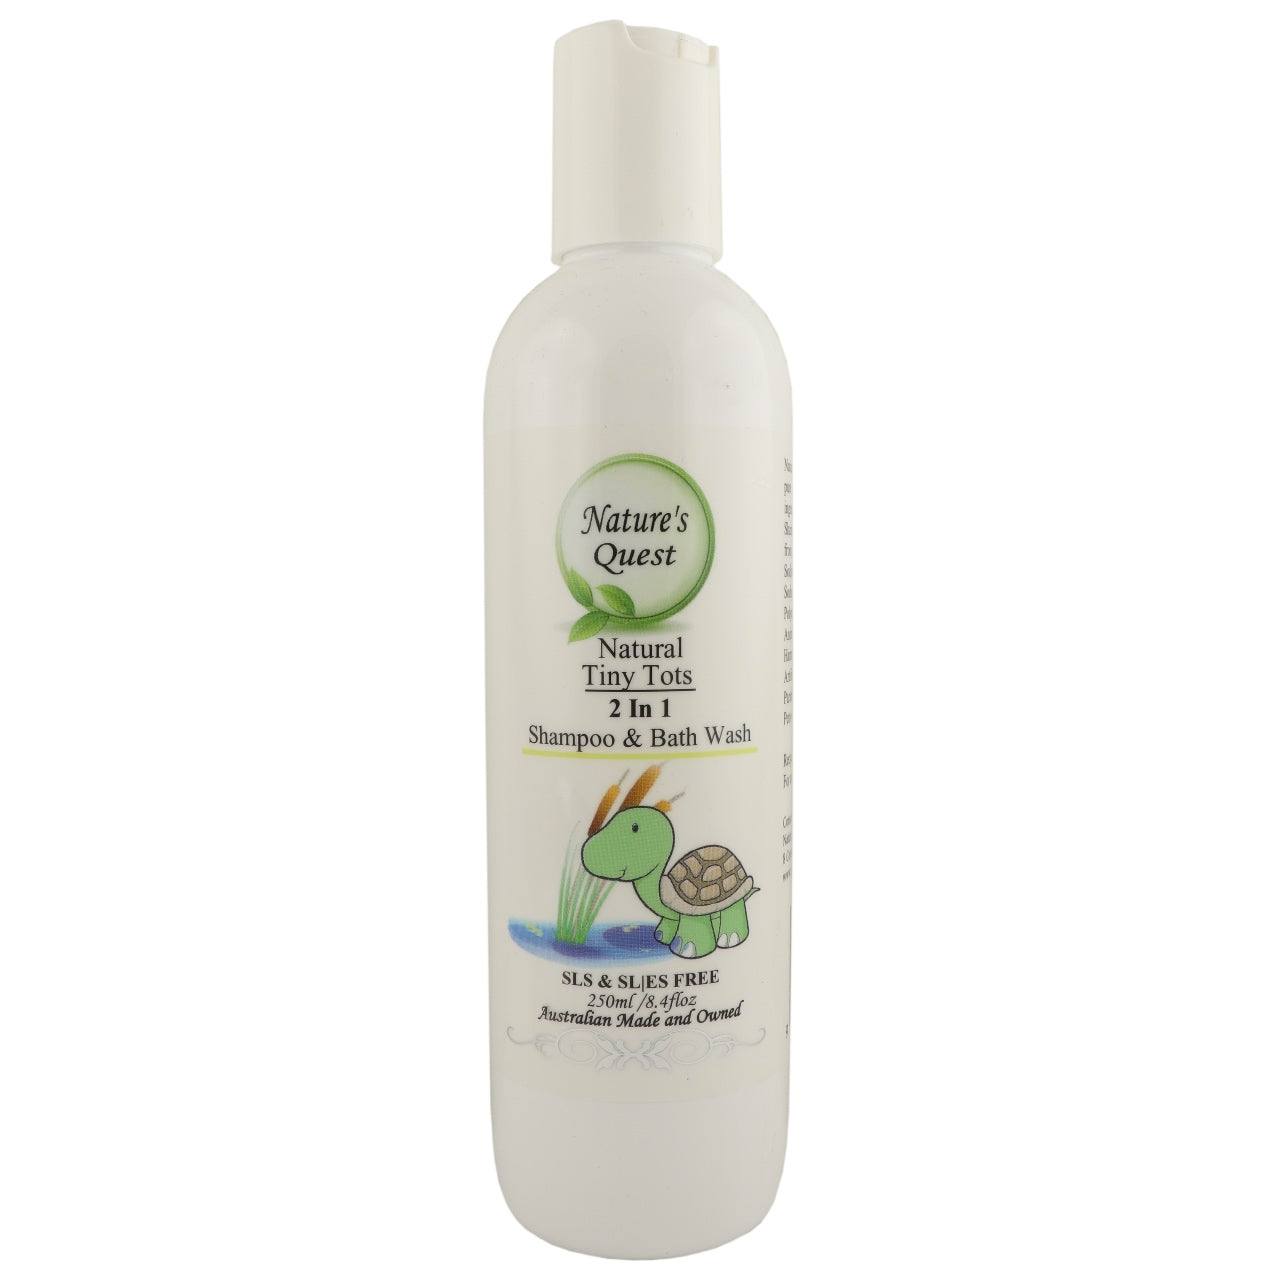 Nature's Quest Baby 2 in 1 Shampoo & Bath Wash